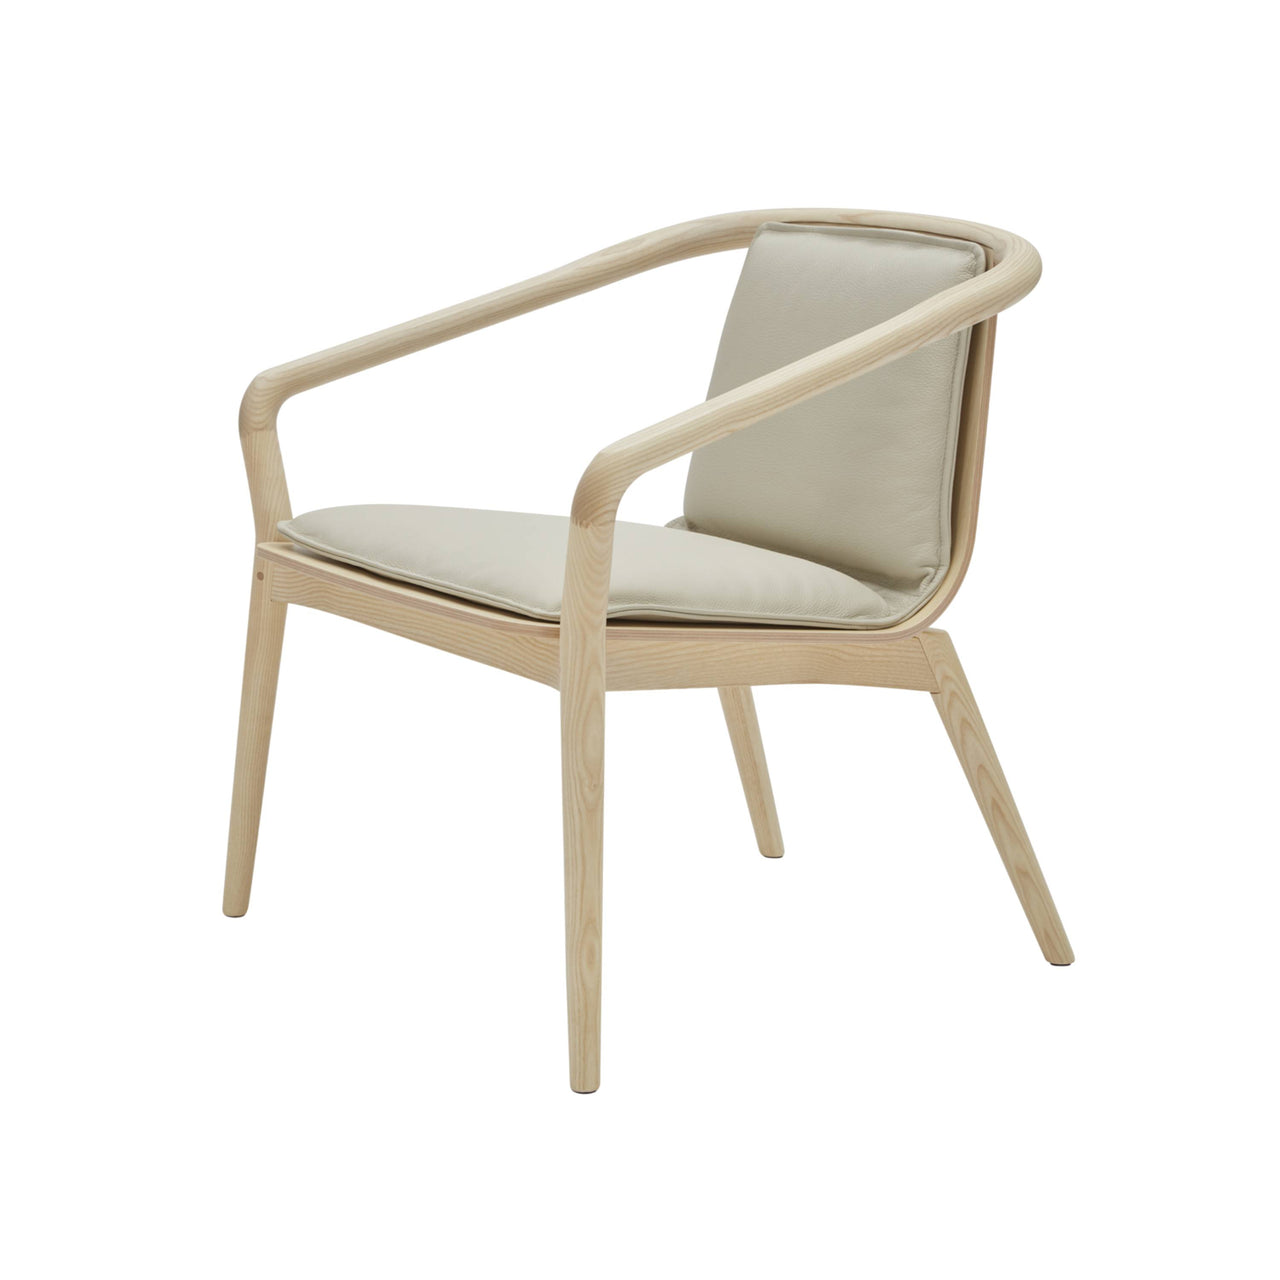 Thomas Armchair: Upholstered + Natural Stained Ash